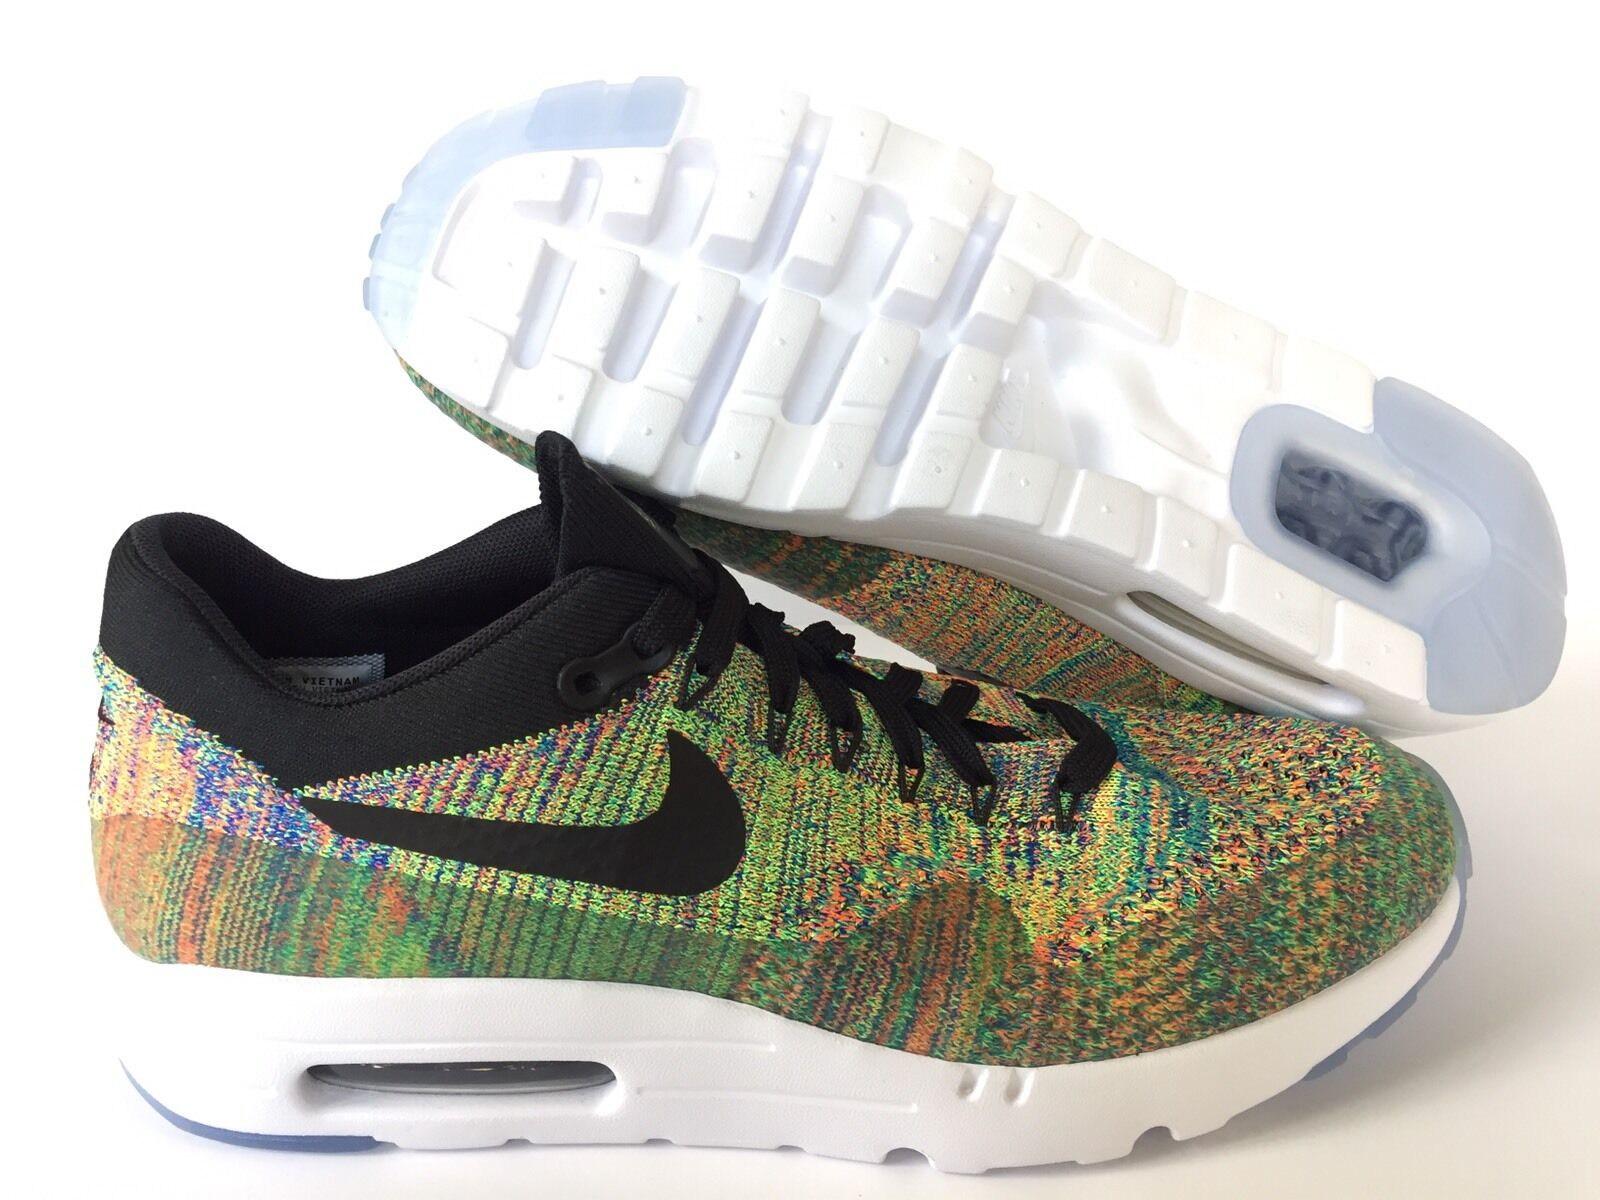 NIKEiD AIR MAX FLIKNIT NEUF Noir MultiCouleure  US Taille 10.5